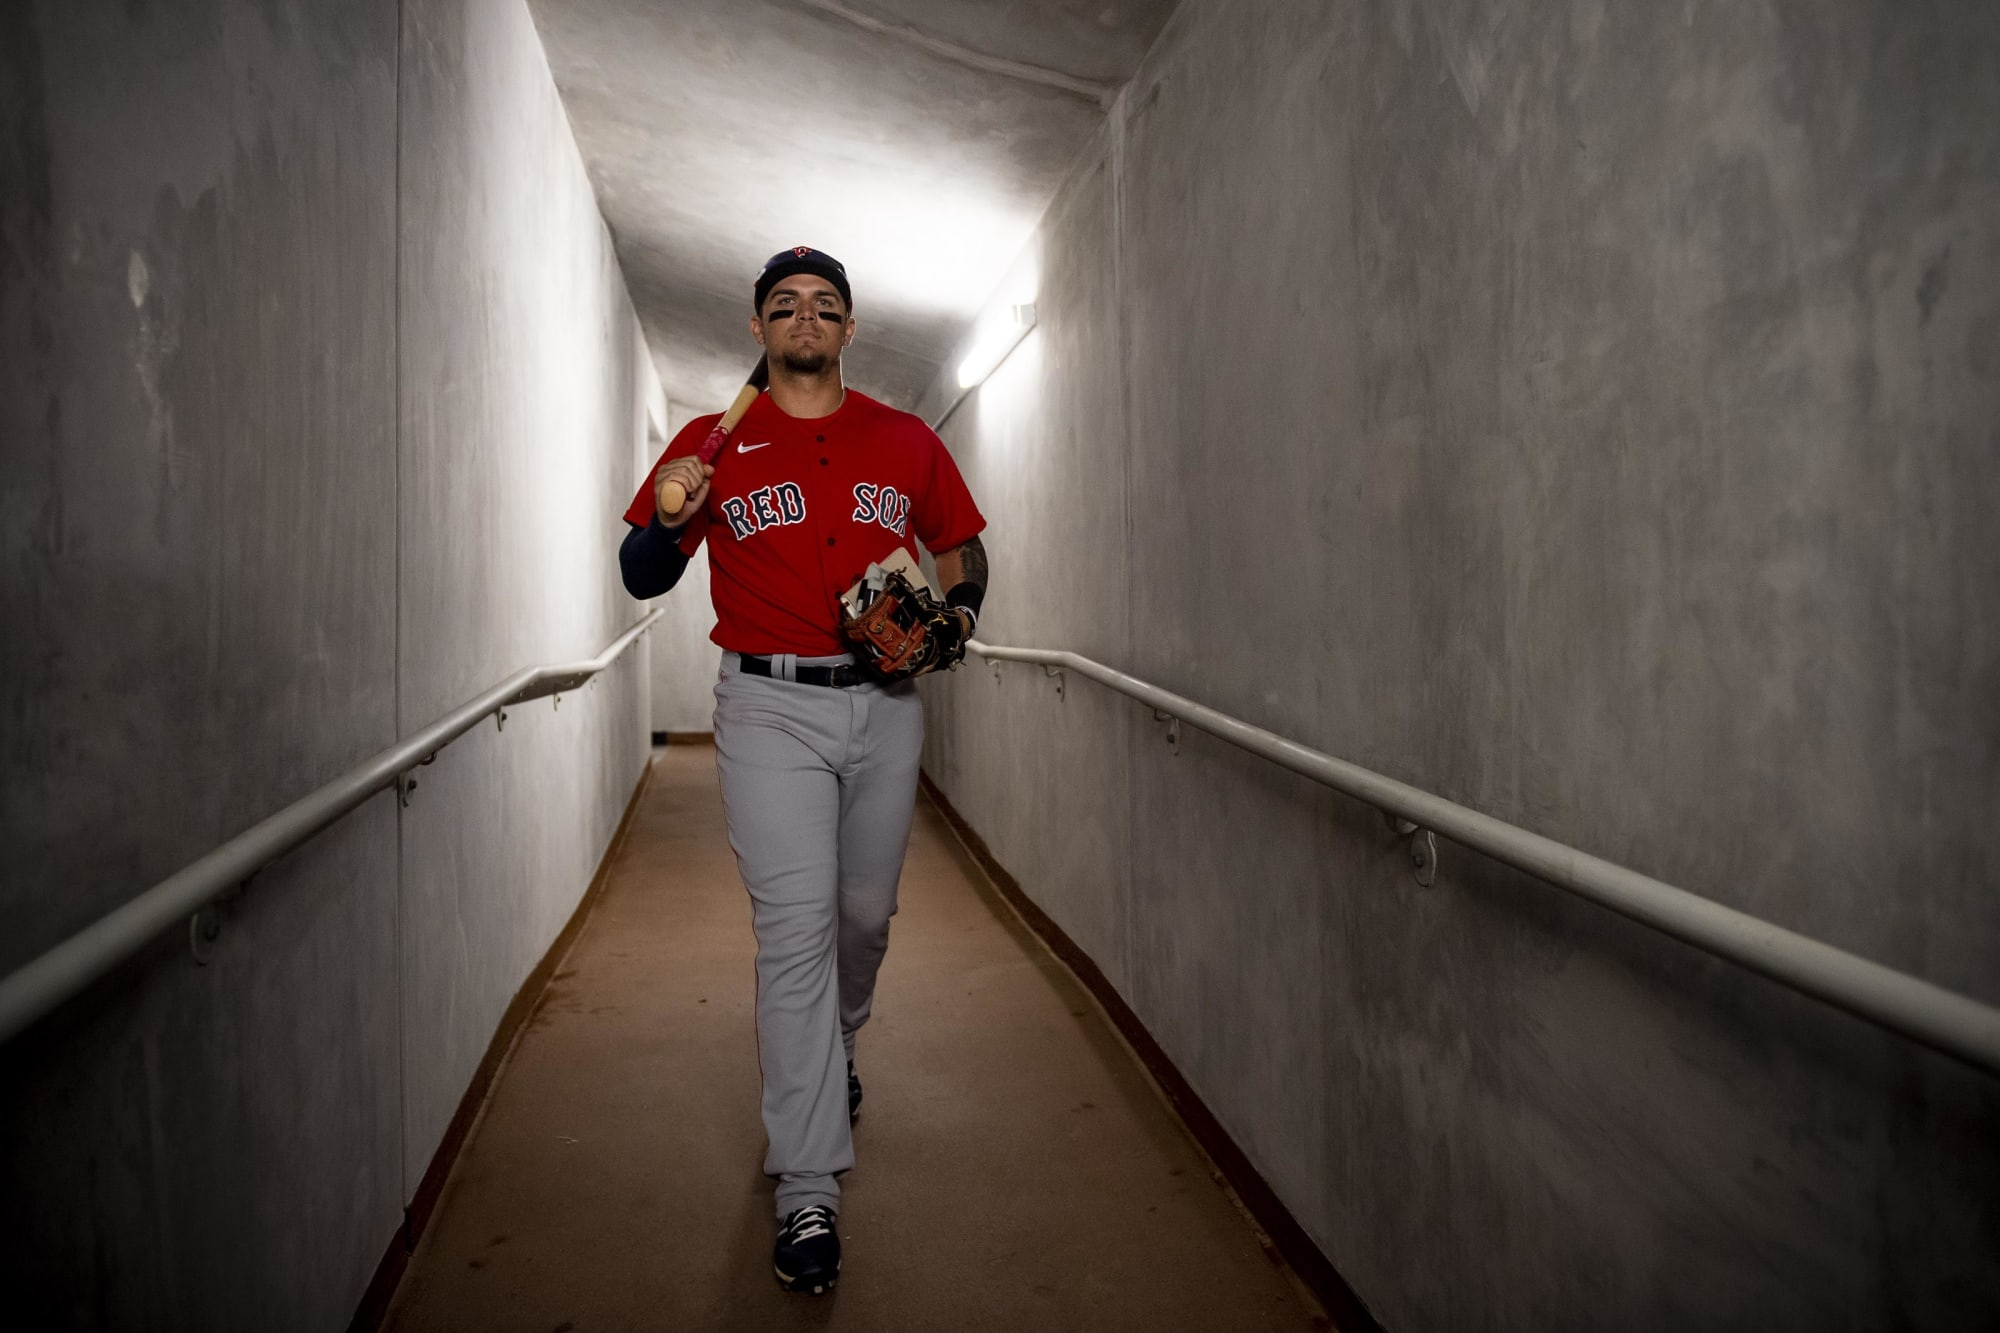 Red Sox: Could Michael Chavis' time in Boston be running out?